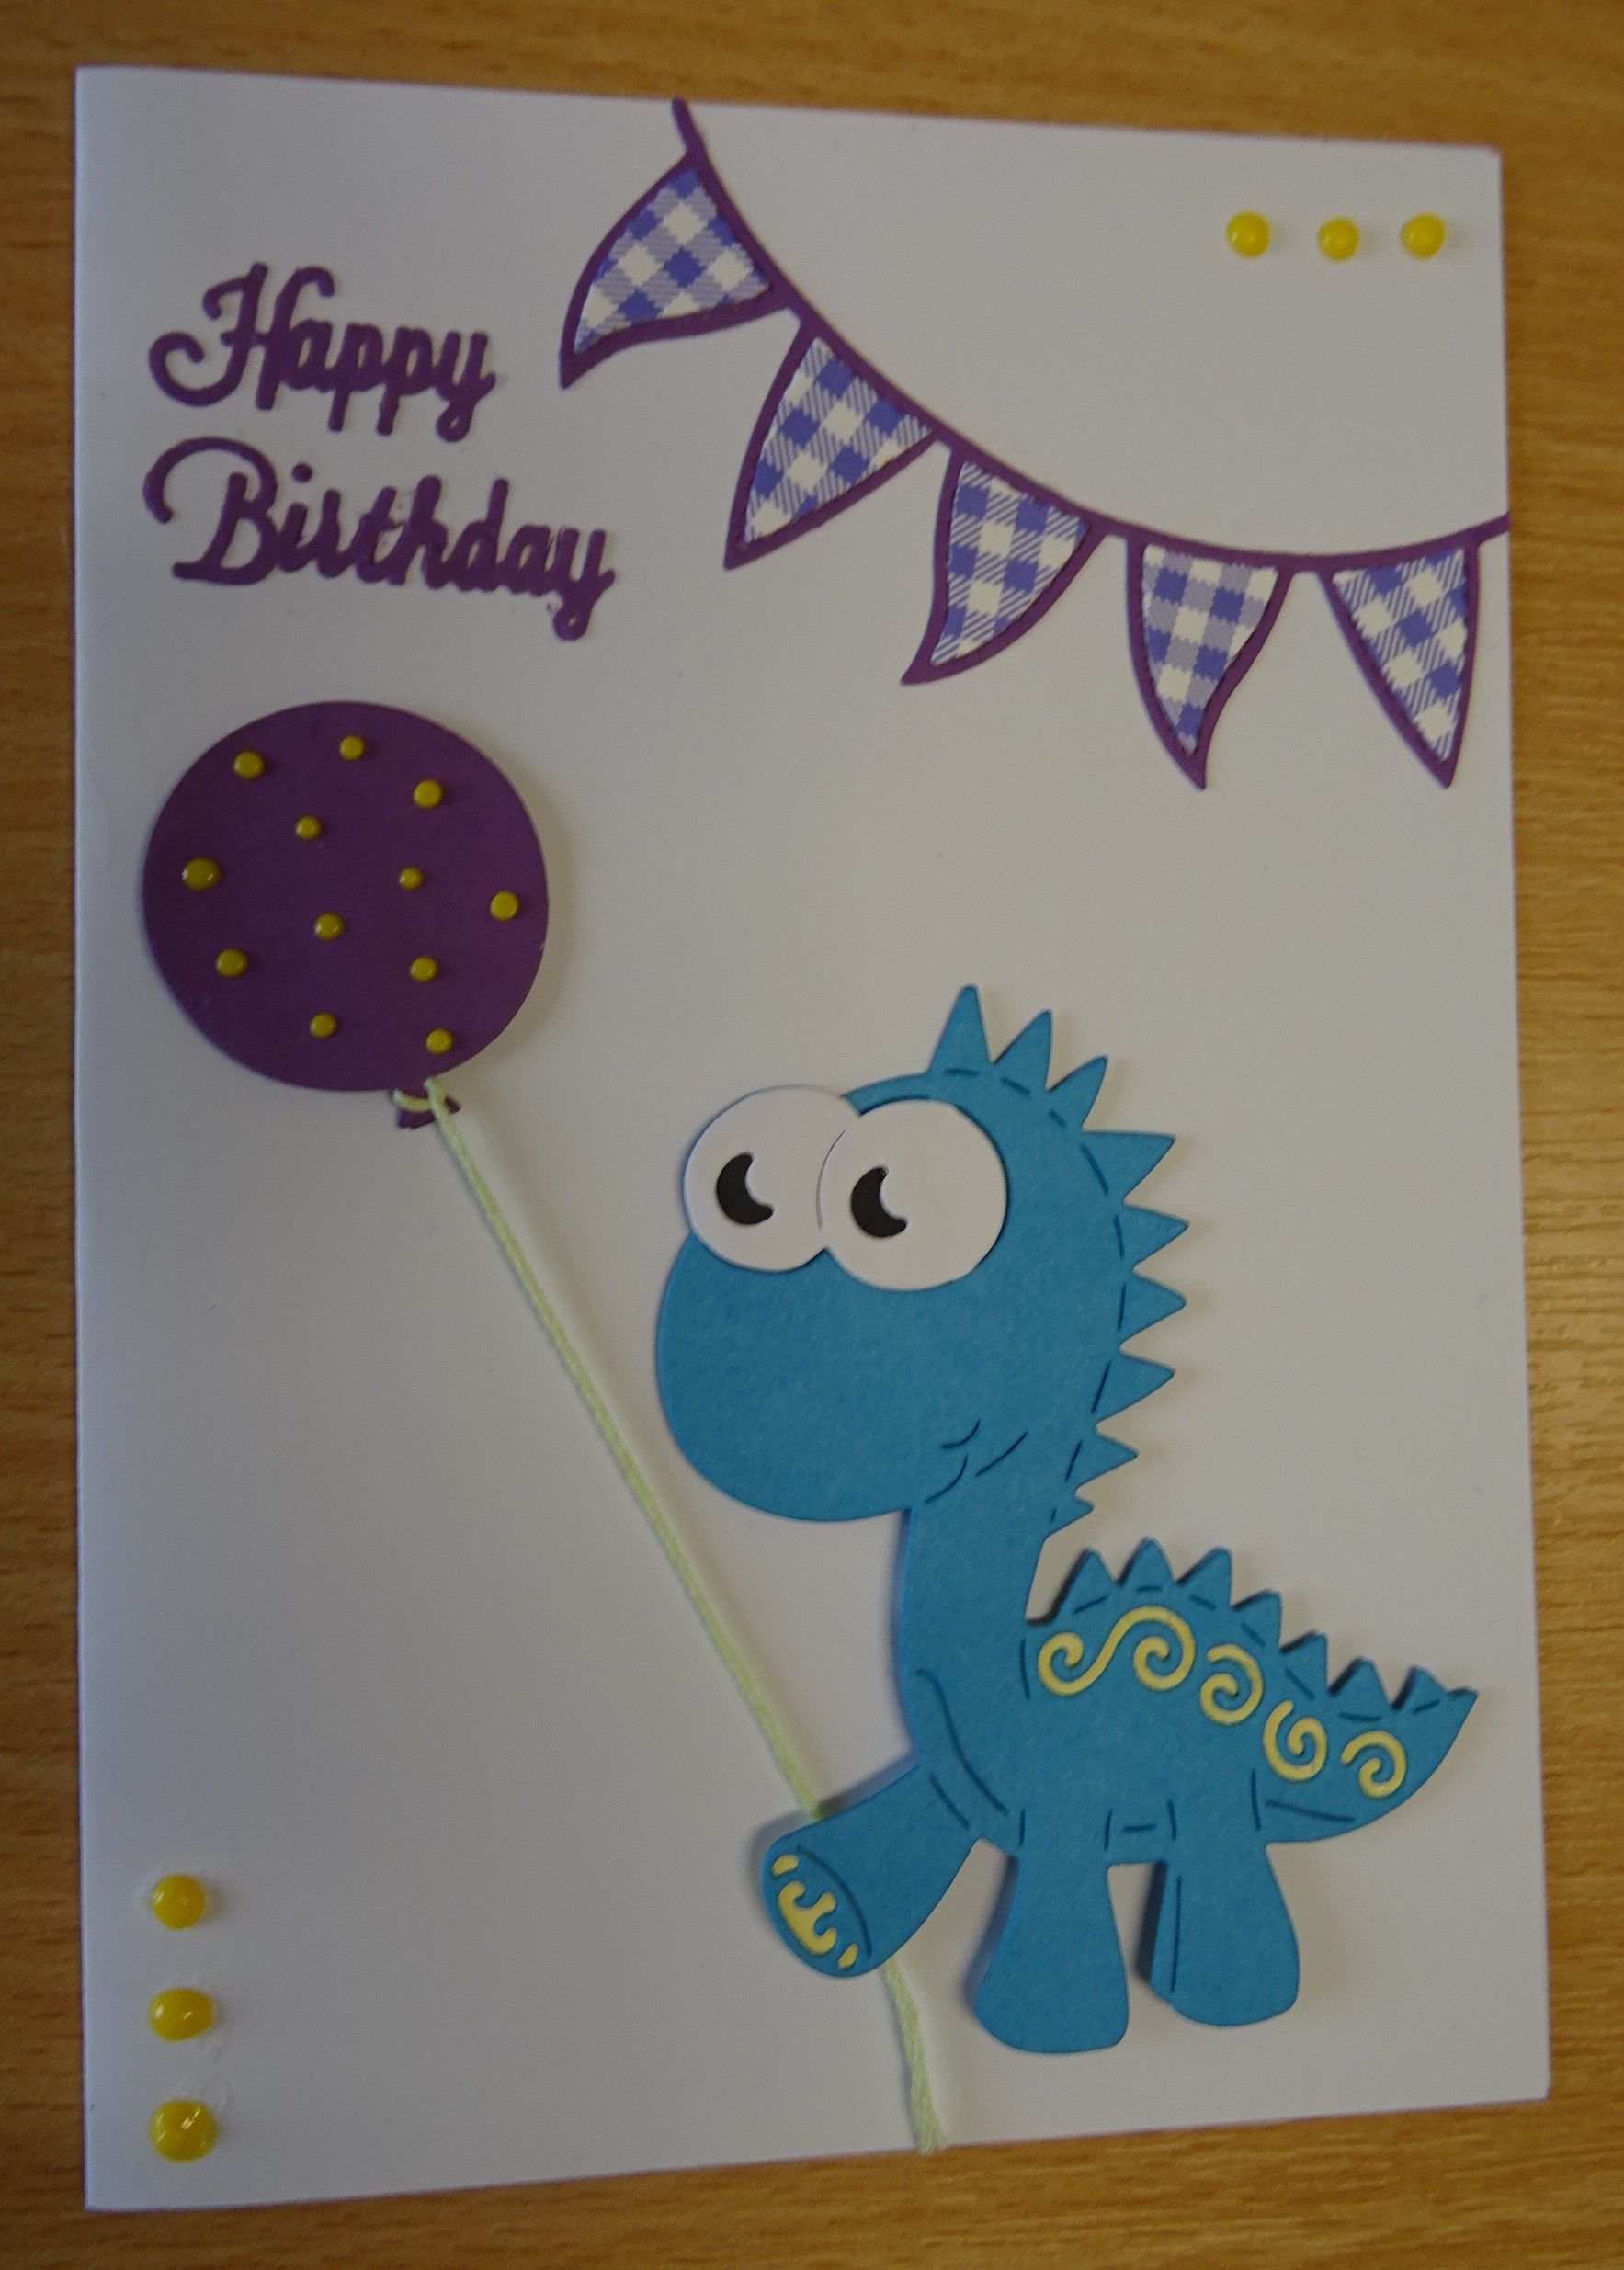 Handmade Birthday Card Tattered Lace Dinosaur Die For More Of My Cards Please Visit The Craftyca Handmade Craft Cards Cards Handmade Handmade Birthday Cards